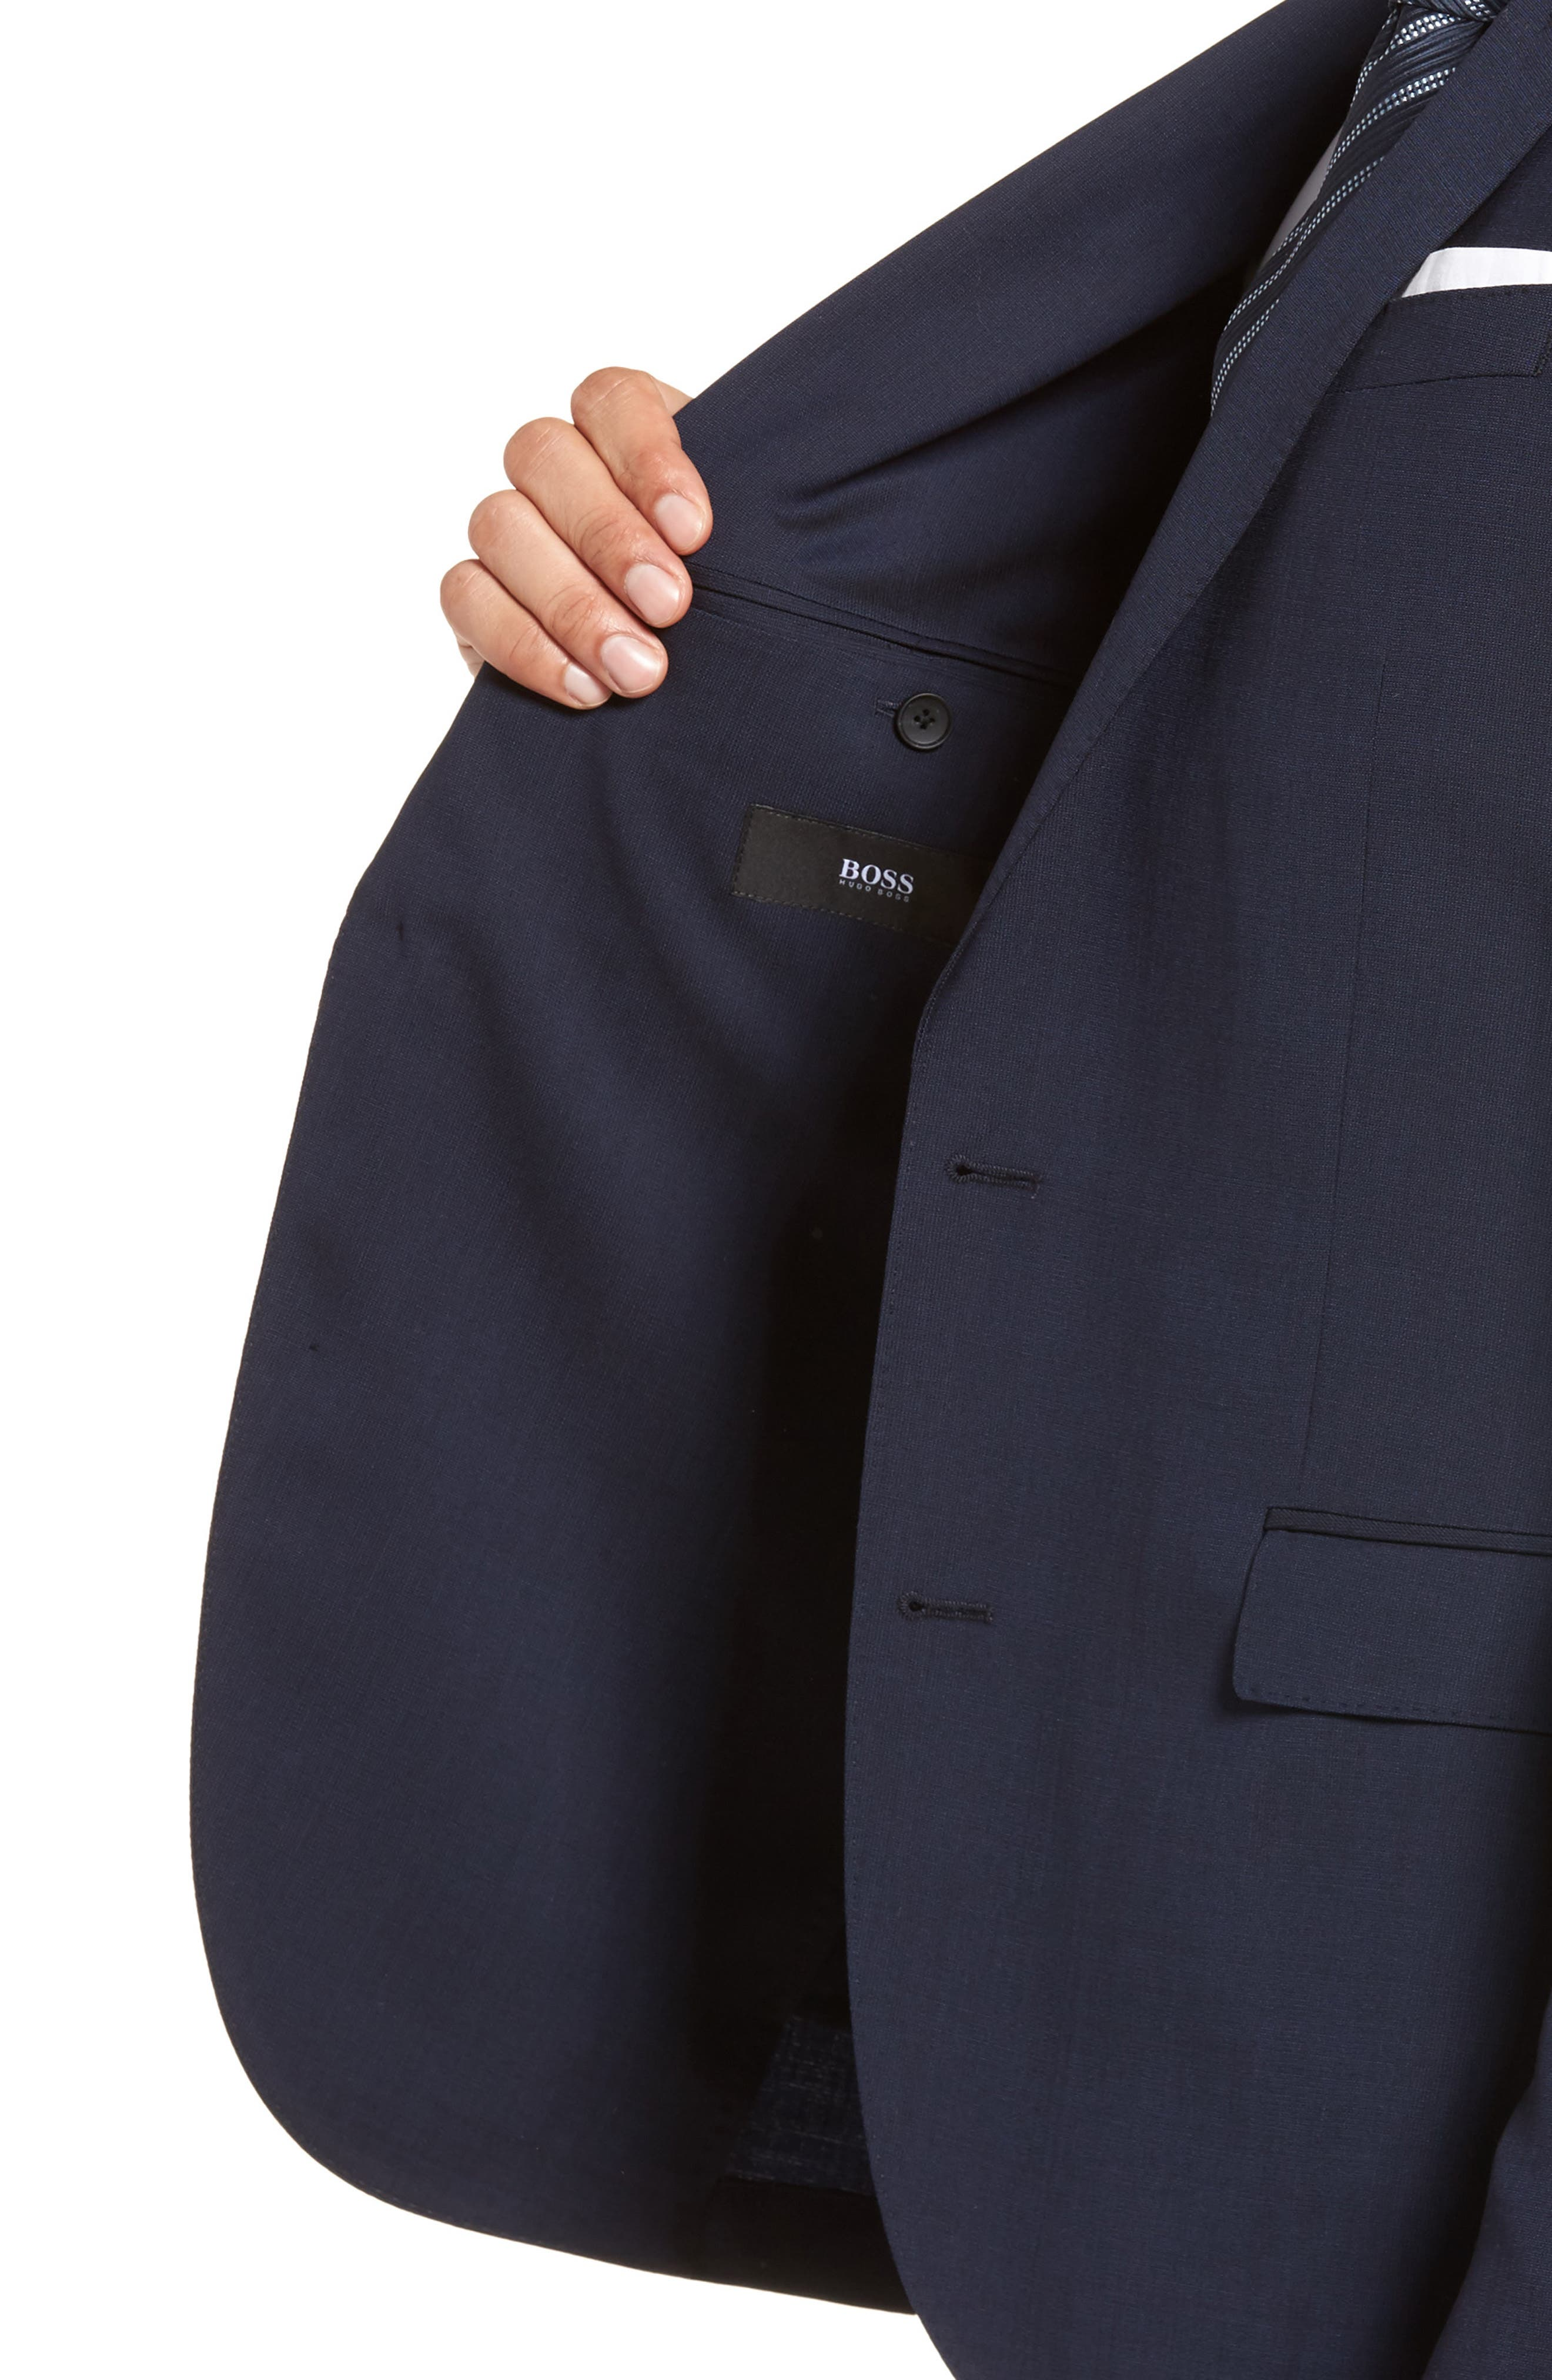 Nylen/Perry Trim Fit Solid Wool Suit,                             Alternate thumbnail 4, color,